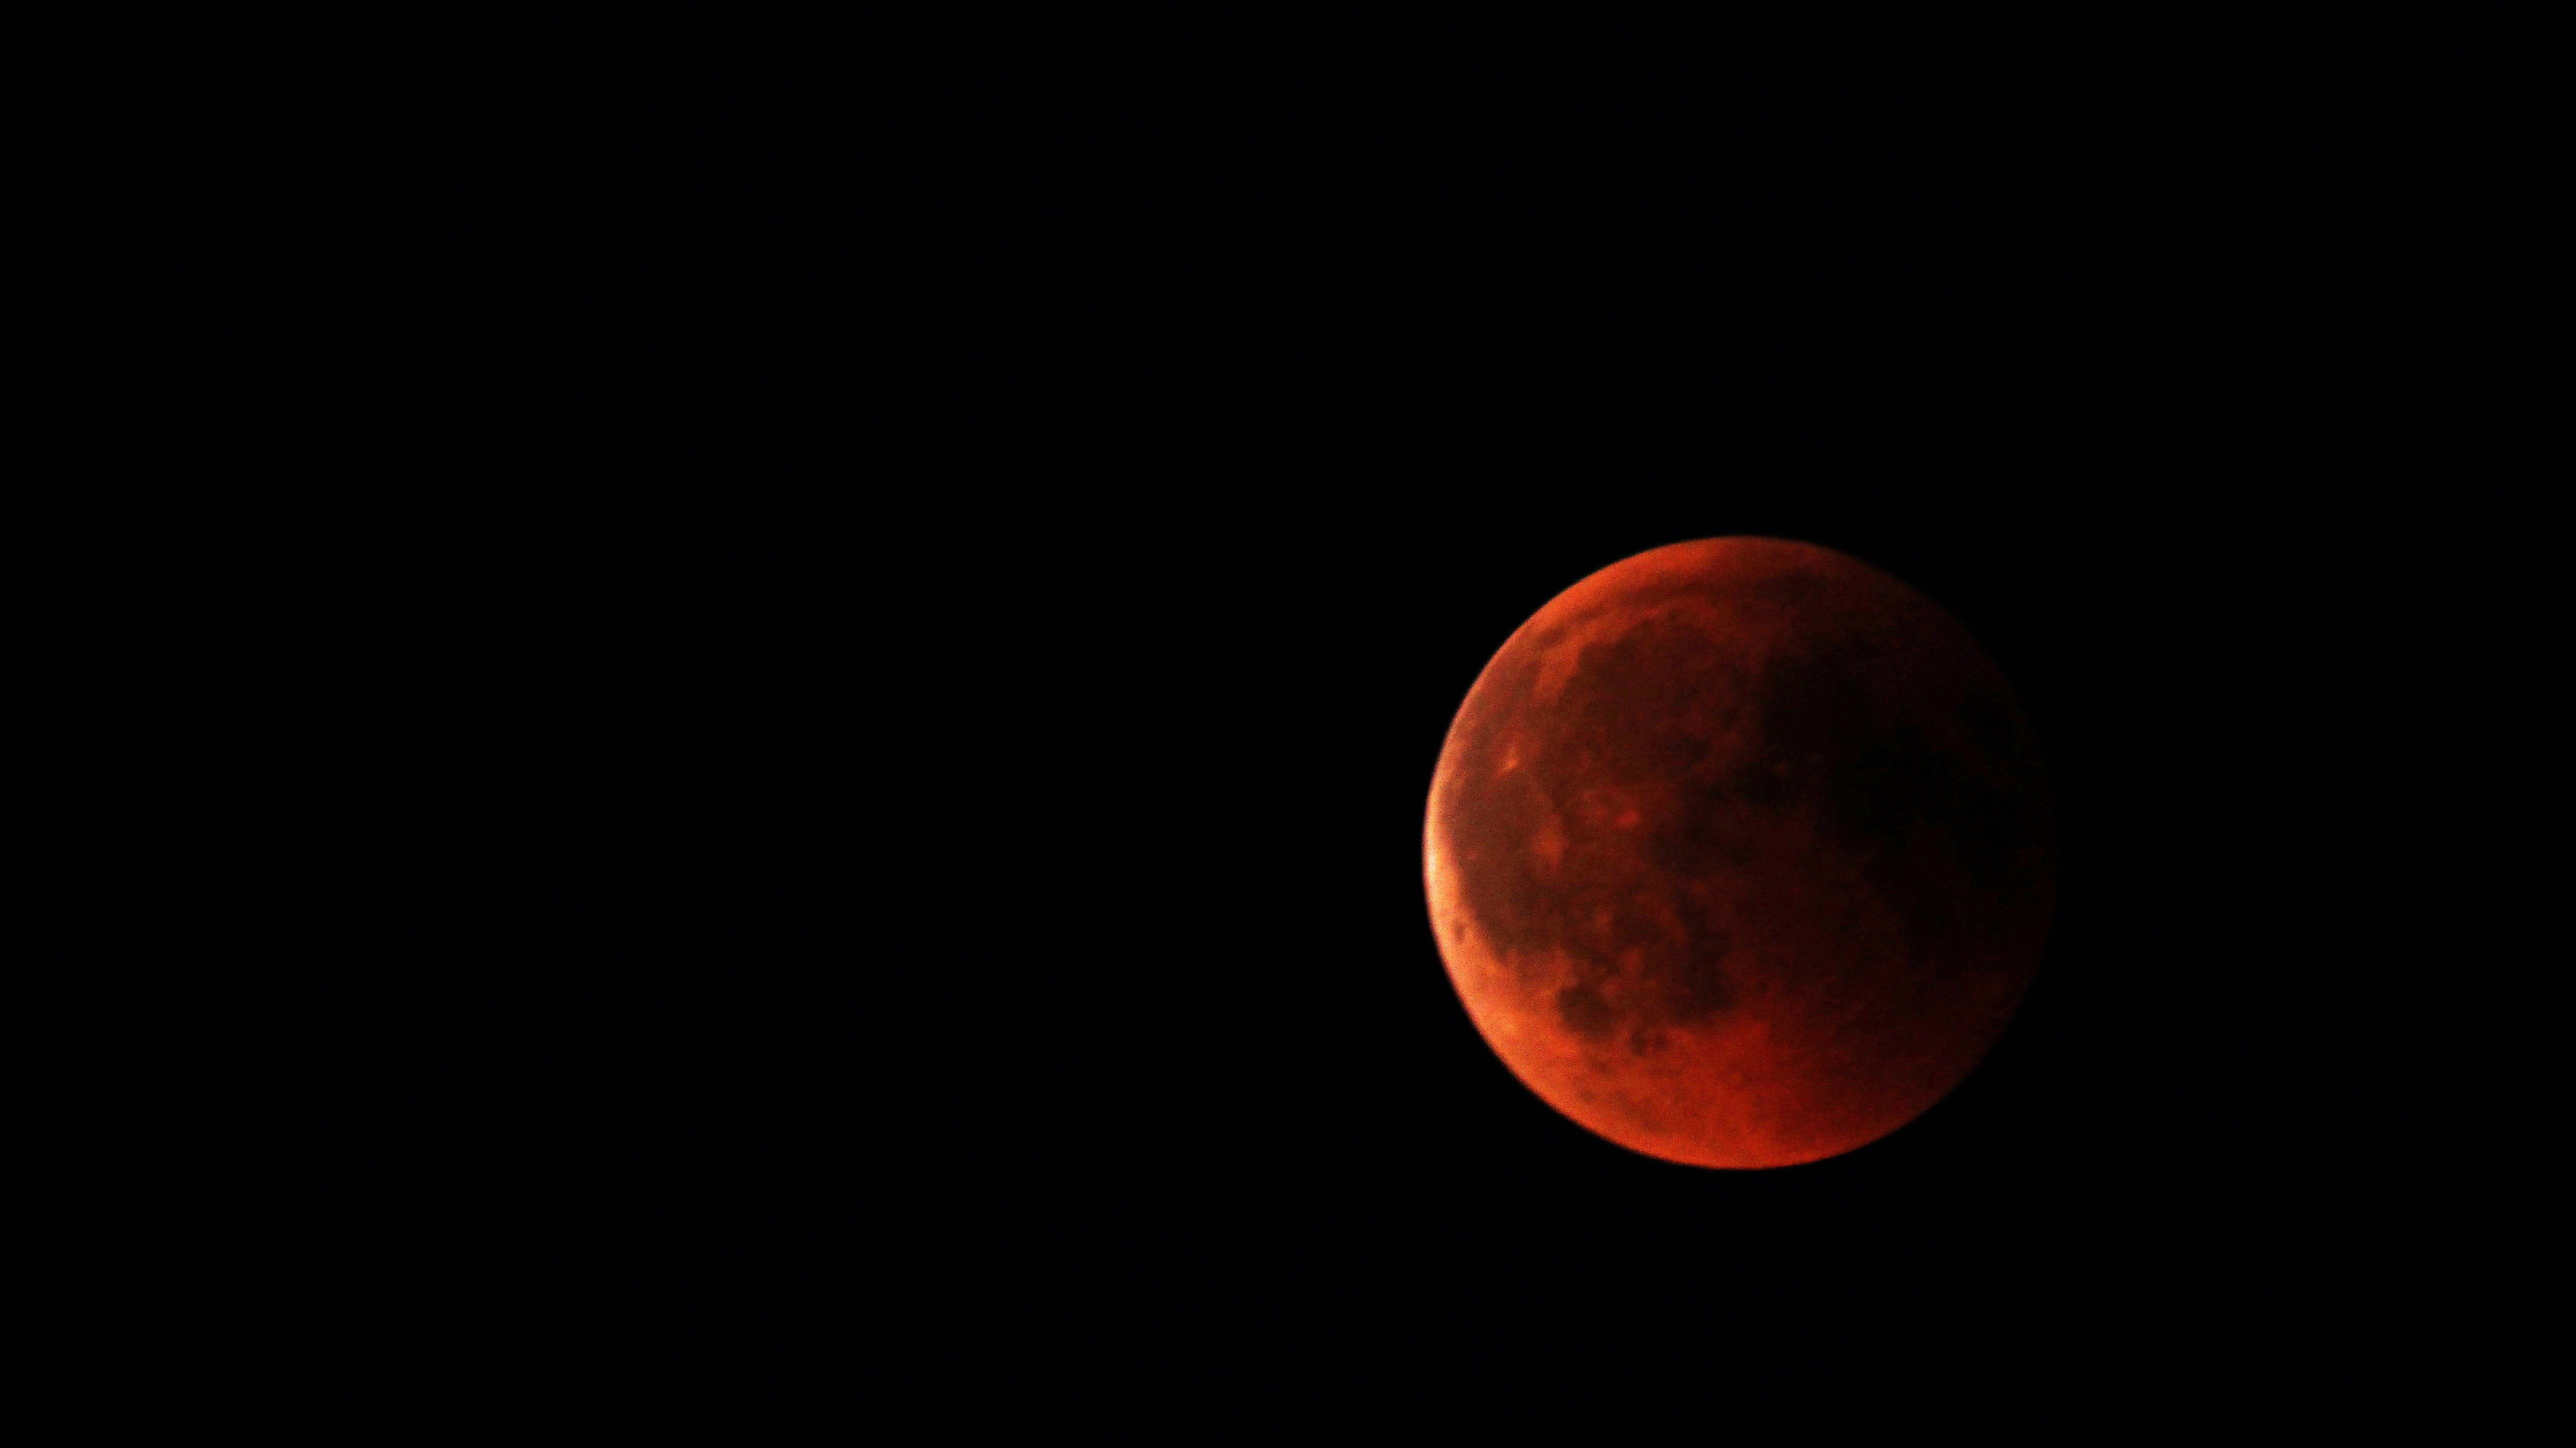 Take a lot of photos of the blood moon as it moves across the sky